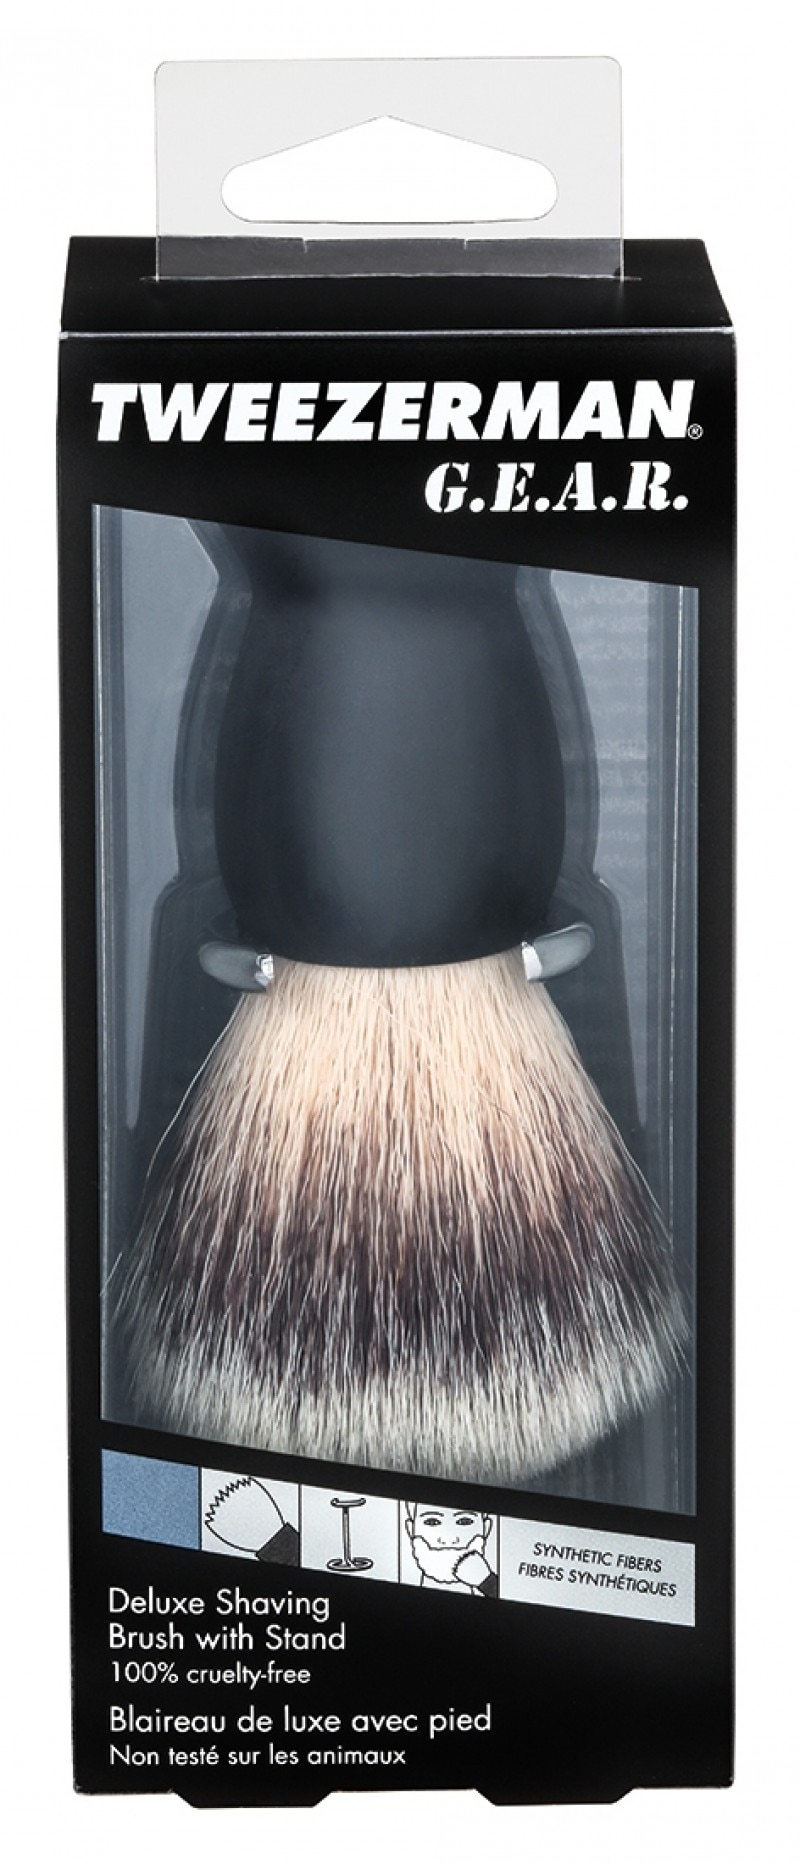 SHAVE BRUSH AND STAND KIT